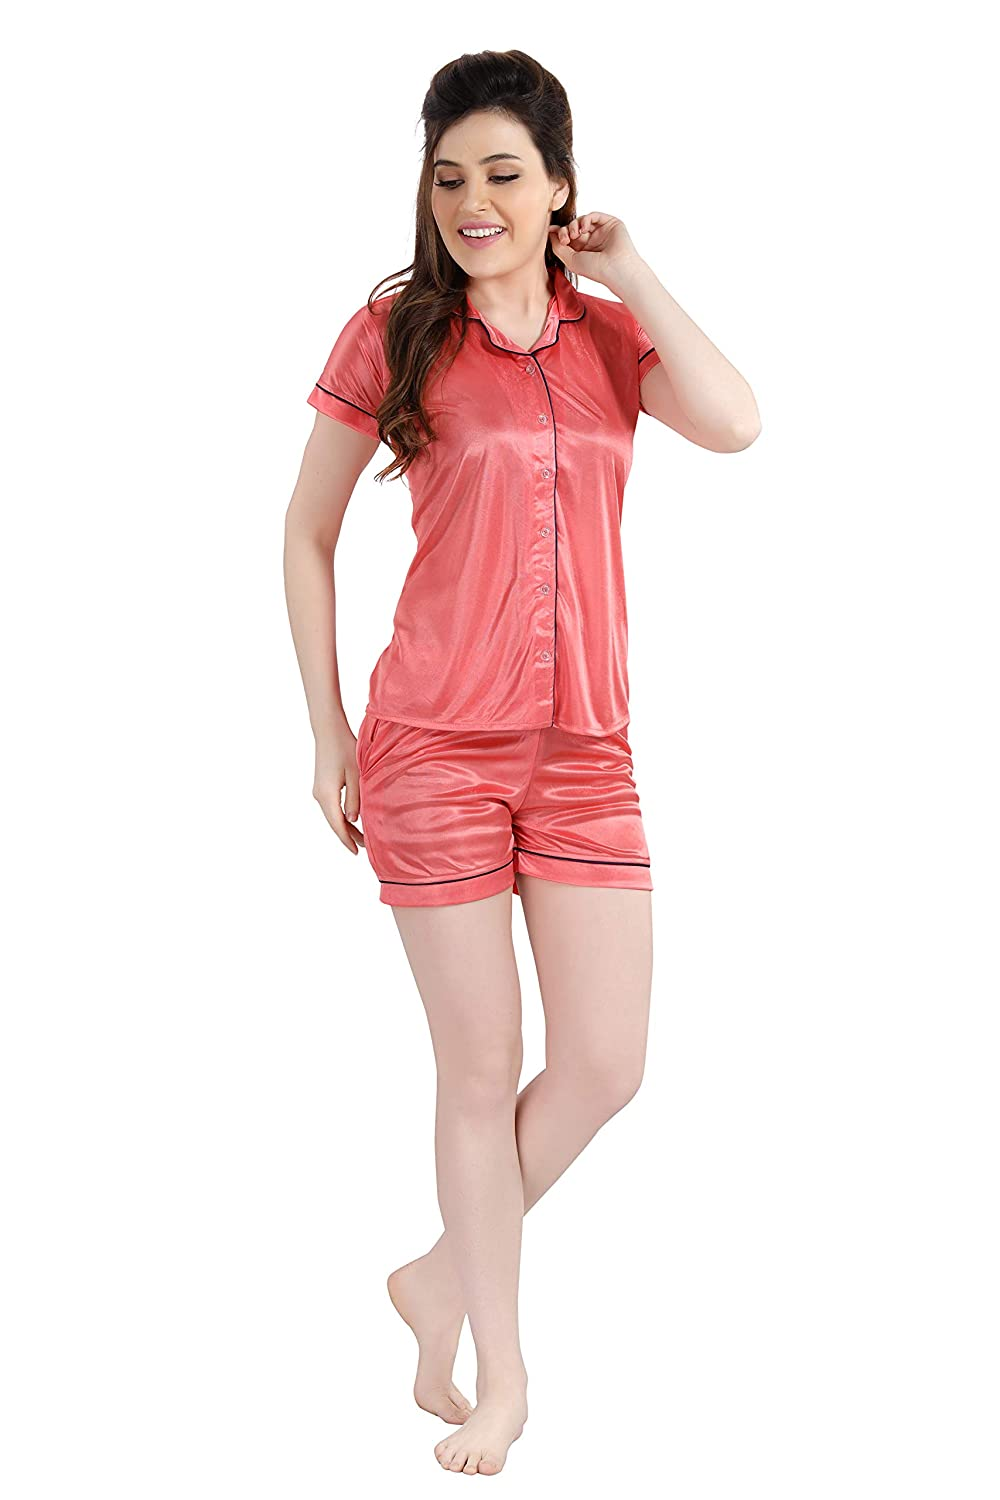 POUR FEMME Women Satin Short Sleeve Top and Shorts Nightsuit Set0187C